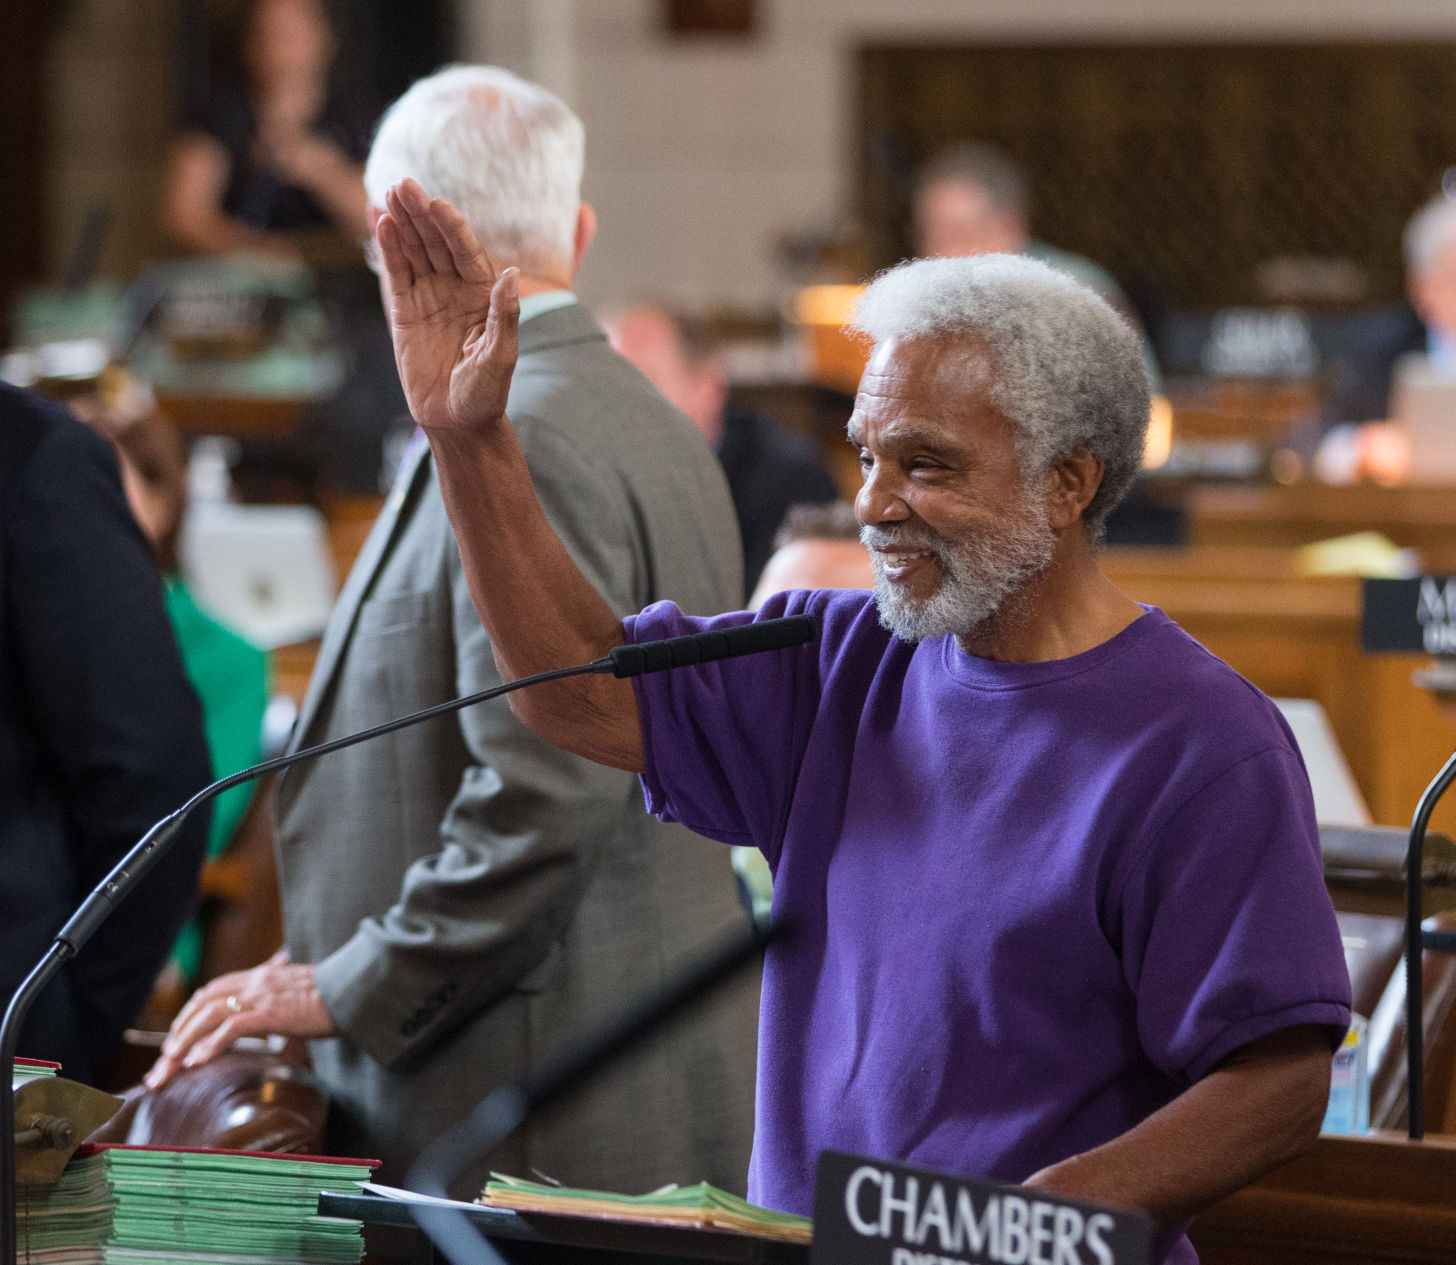 Death penalty repeal veto override vote - Ernie Chambers